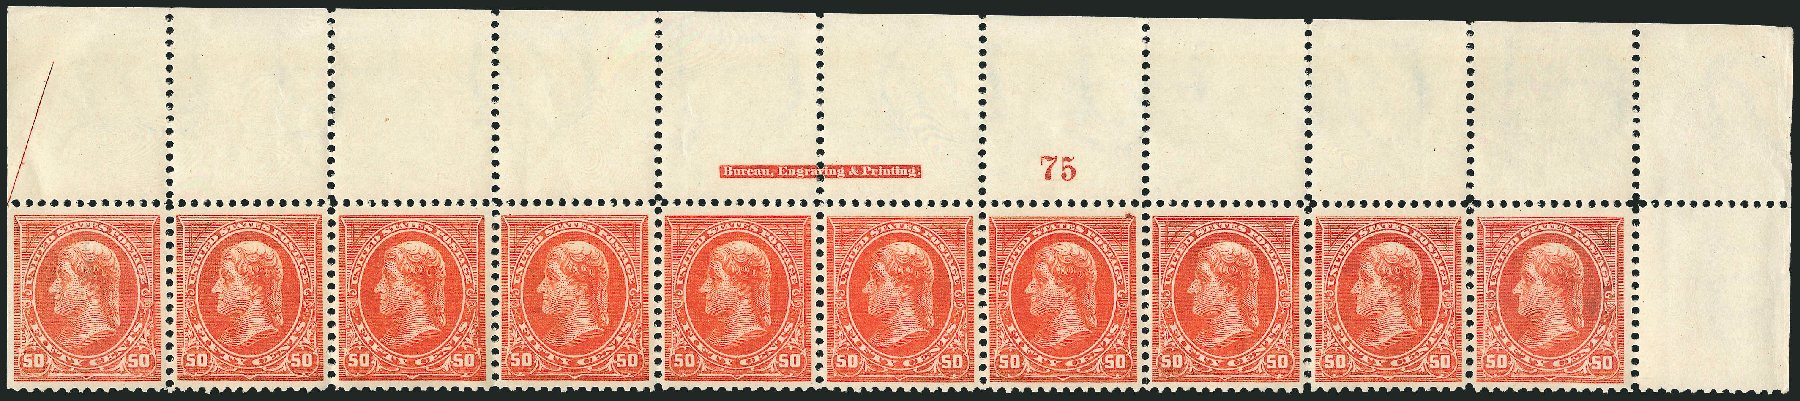 Costs of US Stamps Scott Cat. #275 - 50c 1895 Jefferson. Robert Siegel Auction Galleries, Feb 2015, Sale 1092, Lot 1212